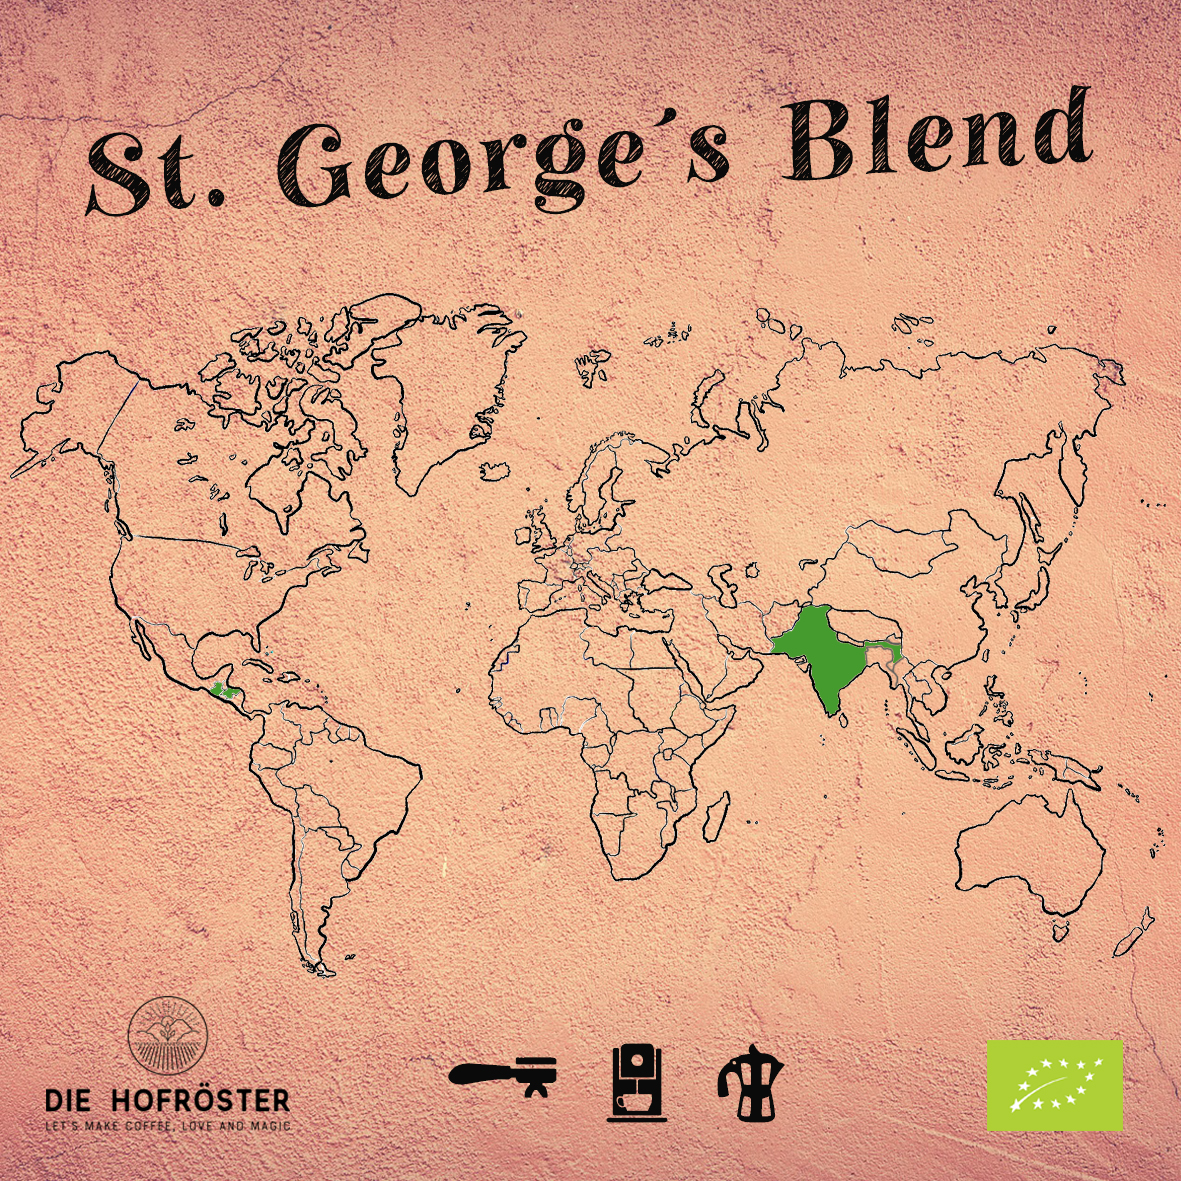 St. Georges Blend